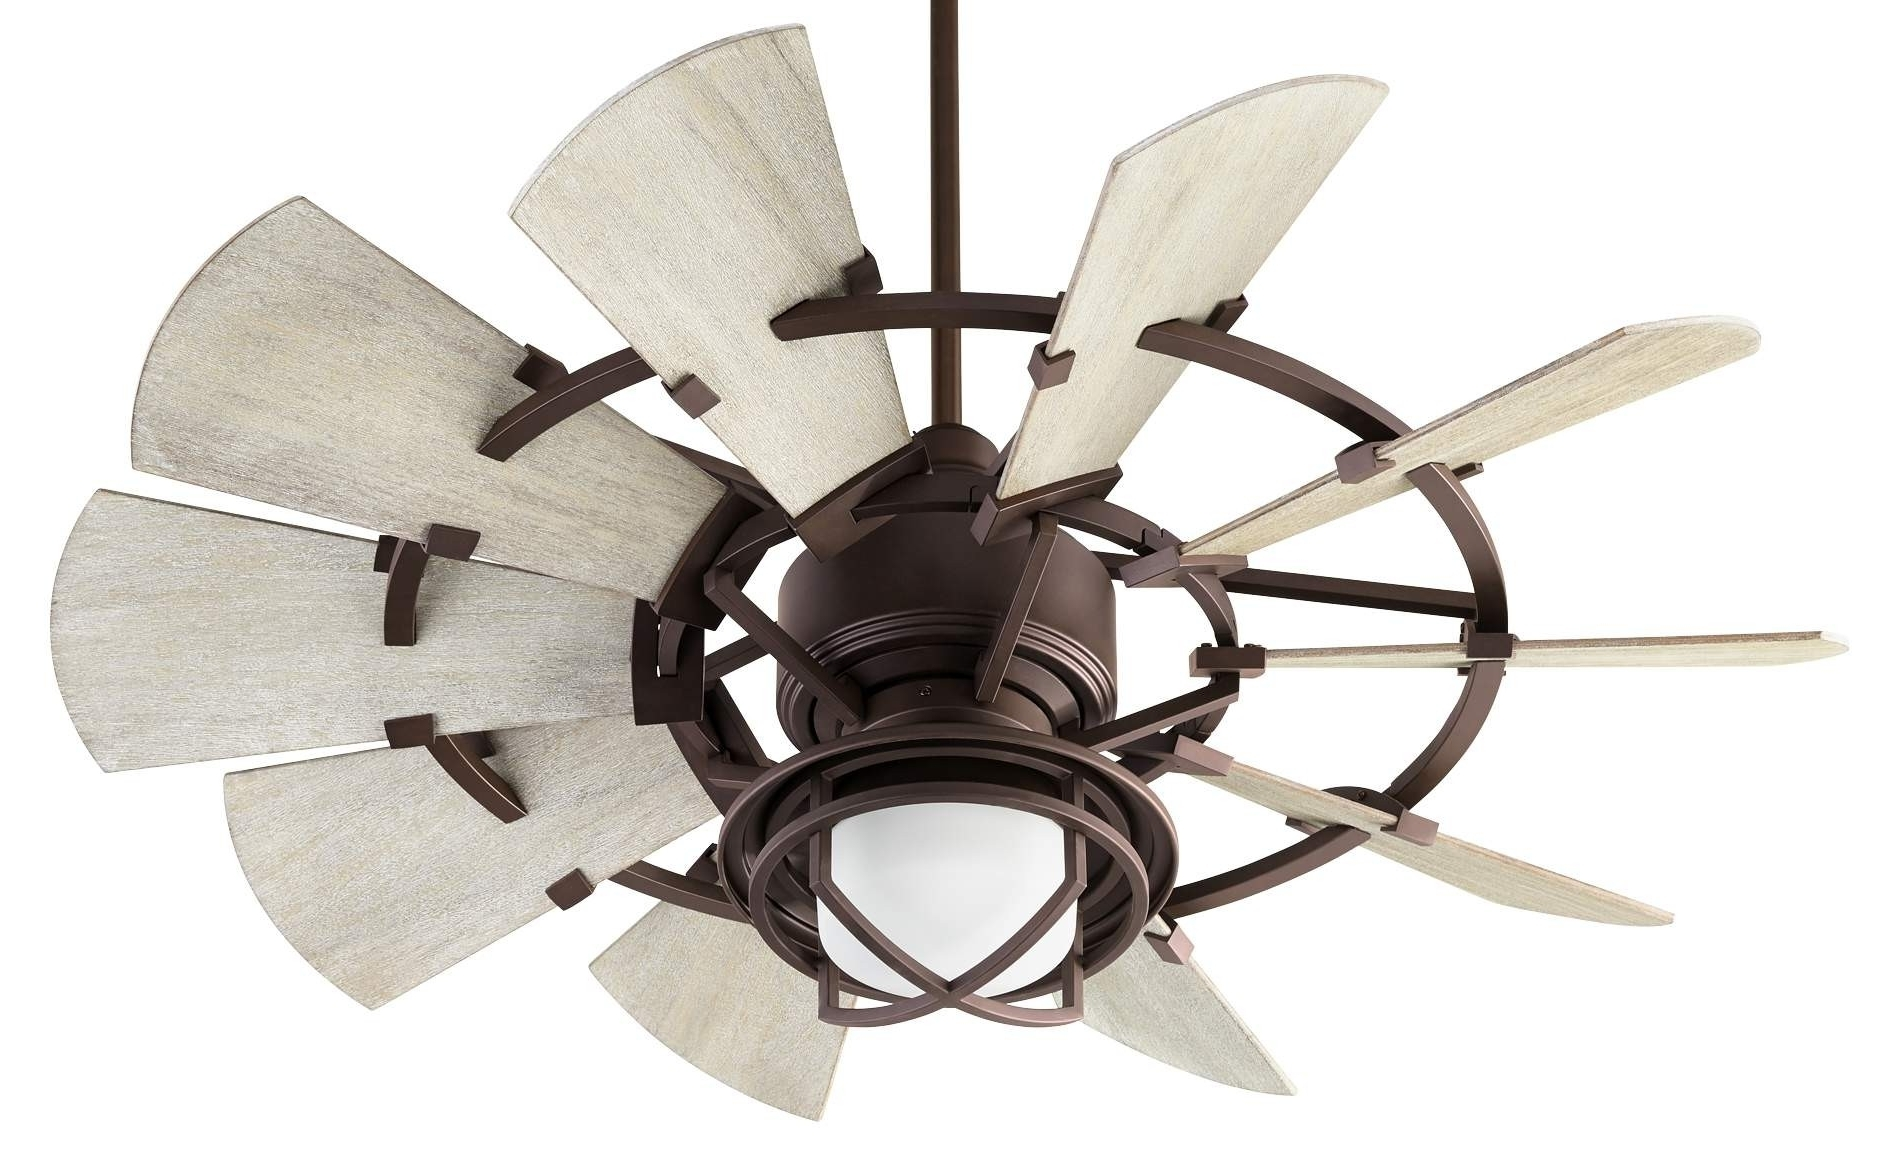 Outdoor Windmill Ceiling Fans With Light For Favorite Quorum Windmill Ceiling Fan Model 194410 86 In Oiled Bronze (View 2 of 20)